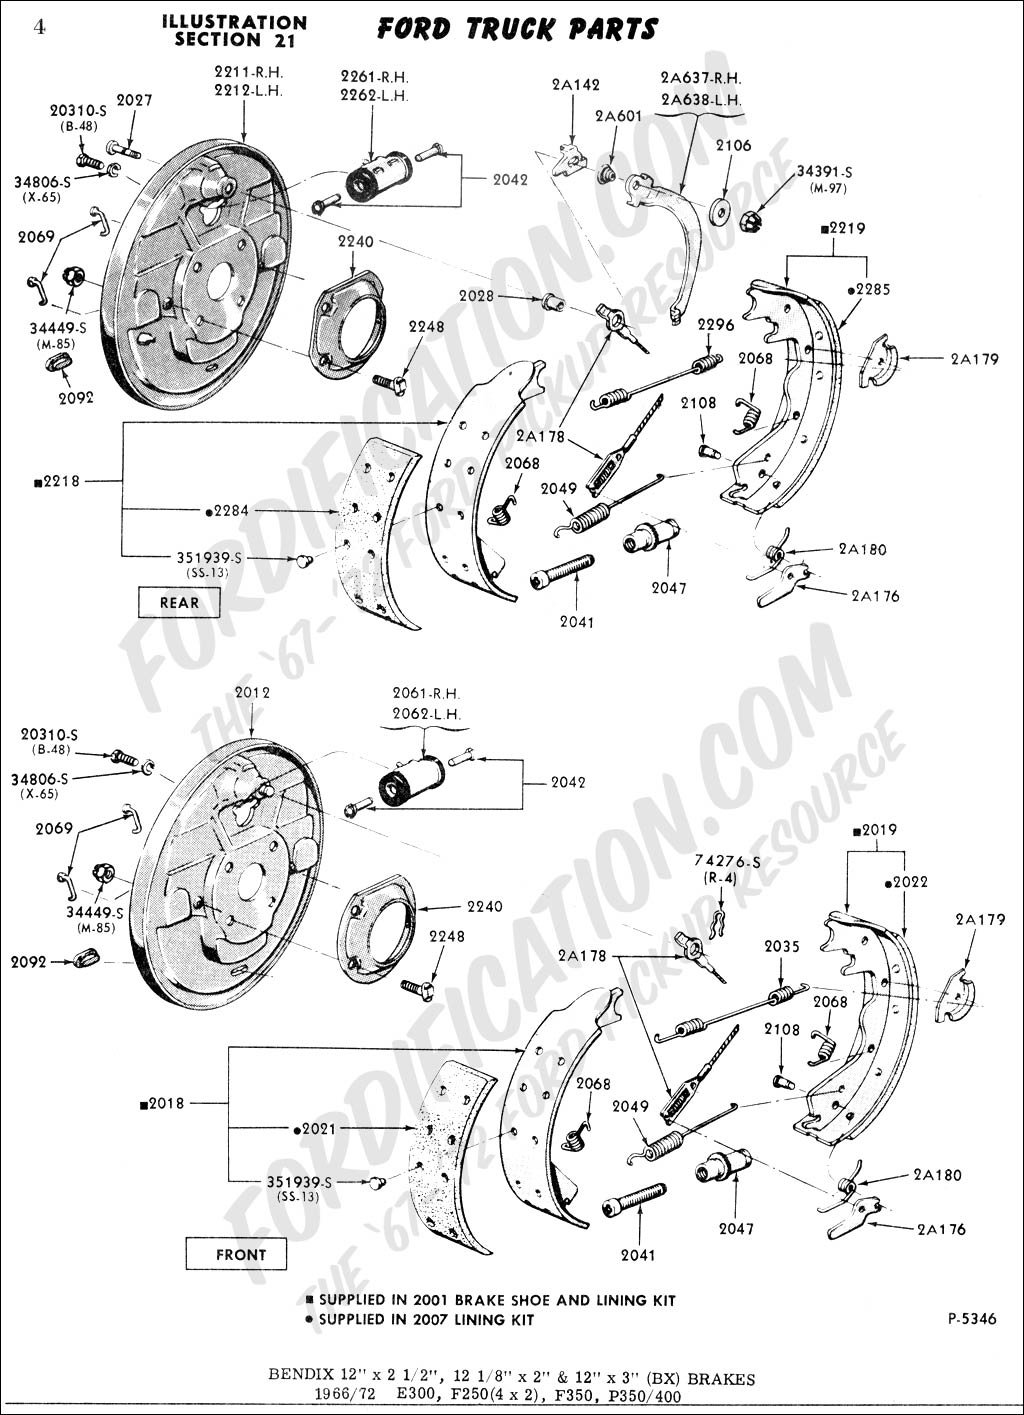 Ford F100 Rear Brake Diagram